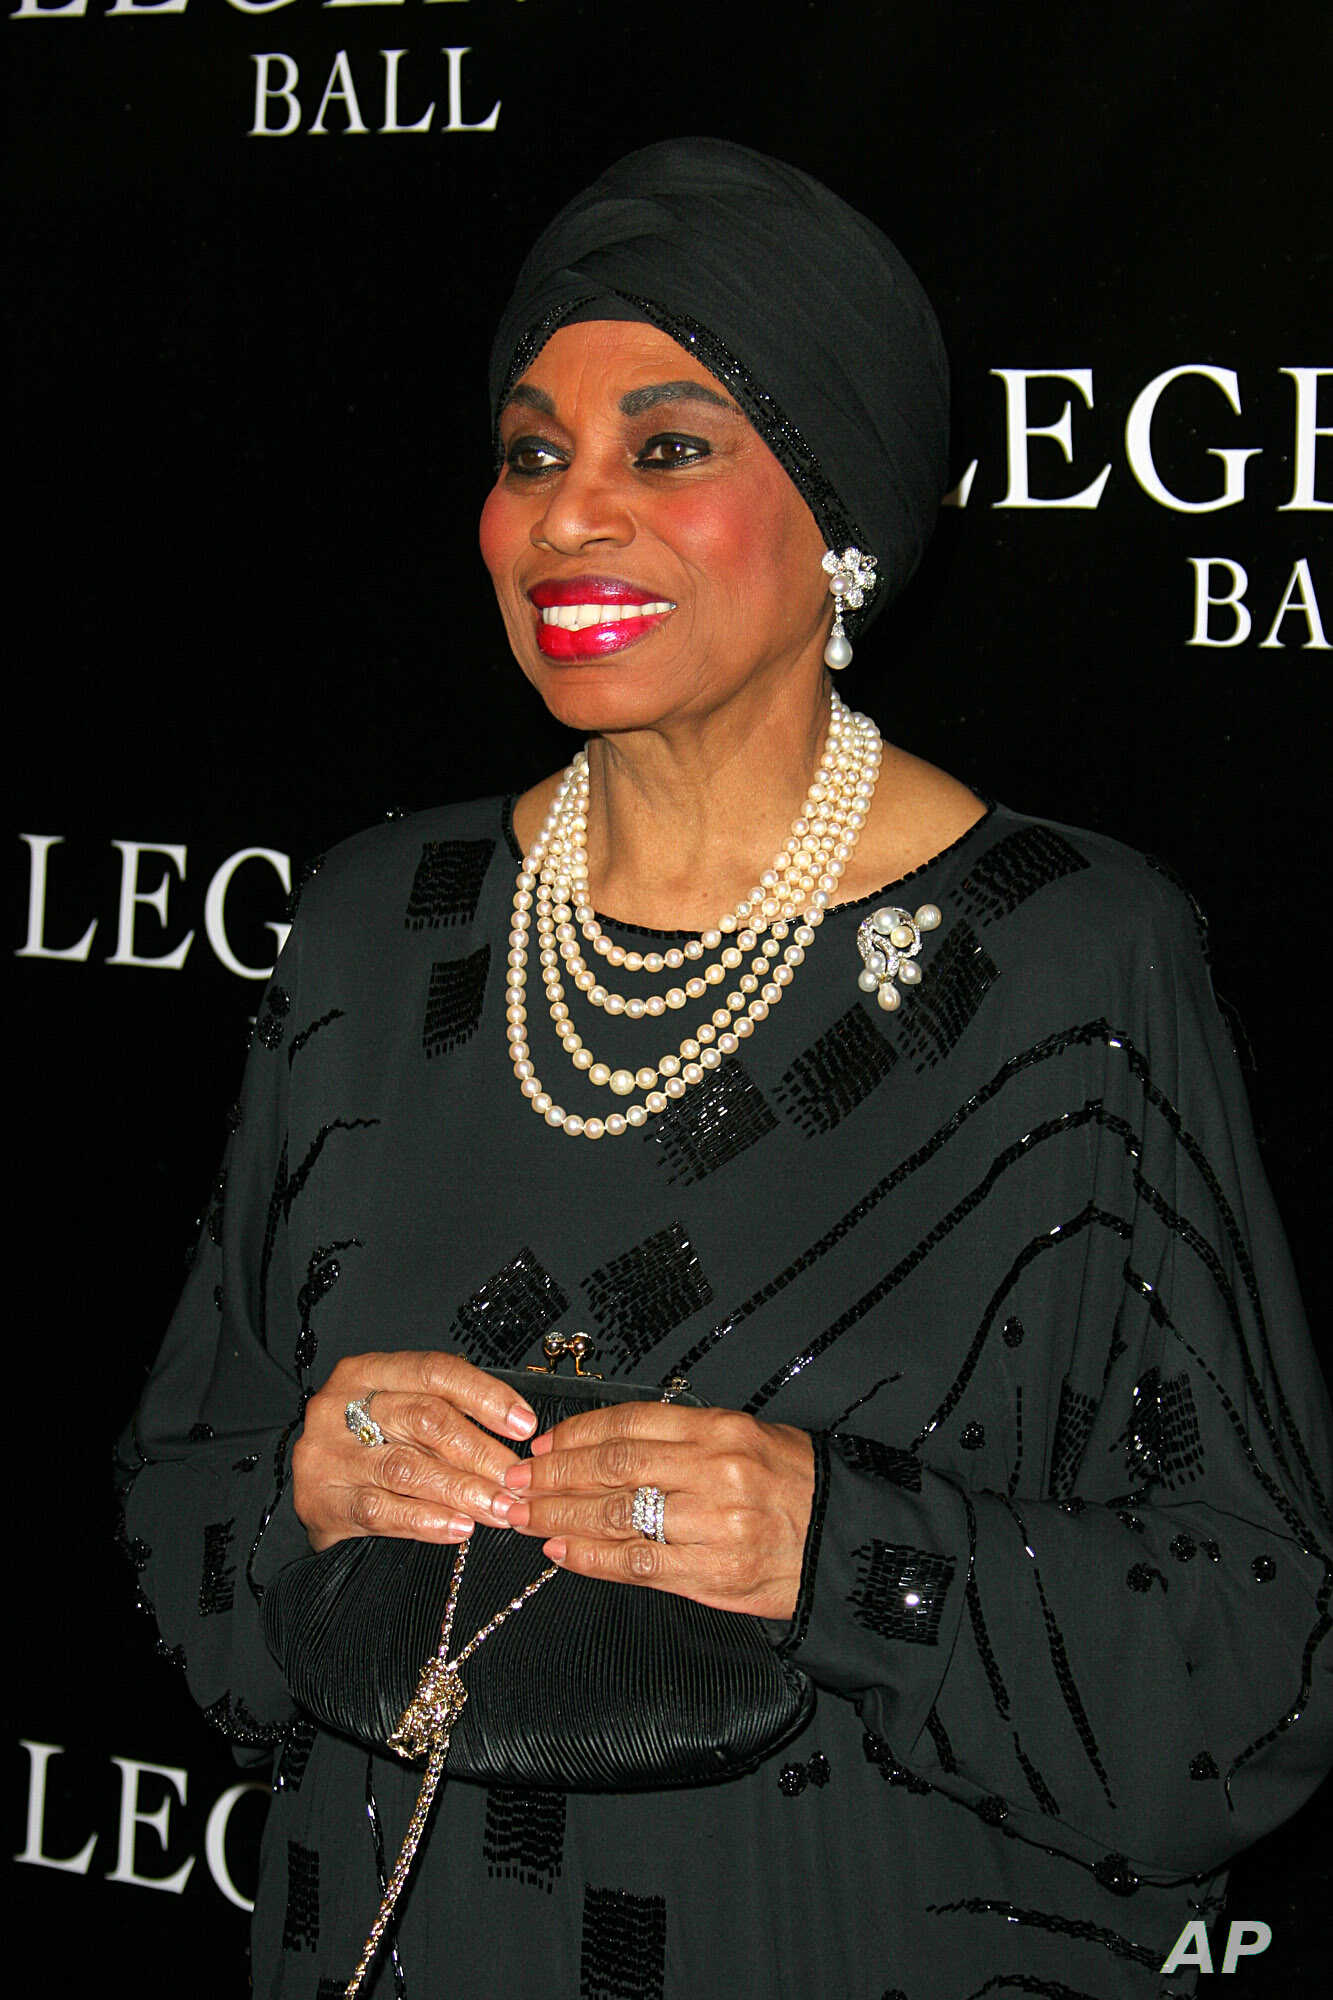 FILE - Opera singer Leontyne Price arrives at the Legends Ball, an award ceremony honoring her and 18 other women who paved the way in arts, entertainment and civil rights, in Santa Barbara, Calif., May 14, 2005.